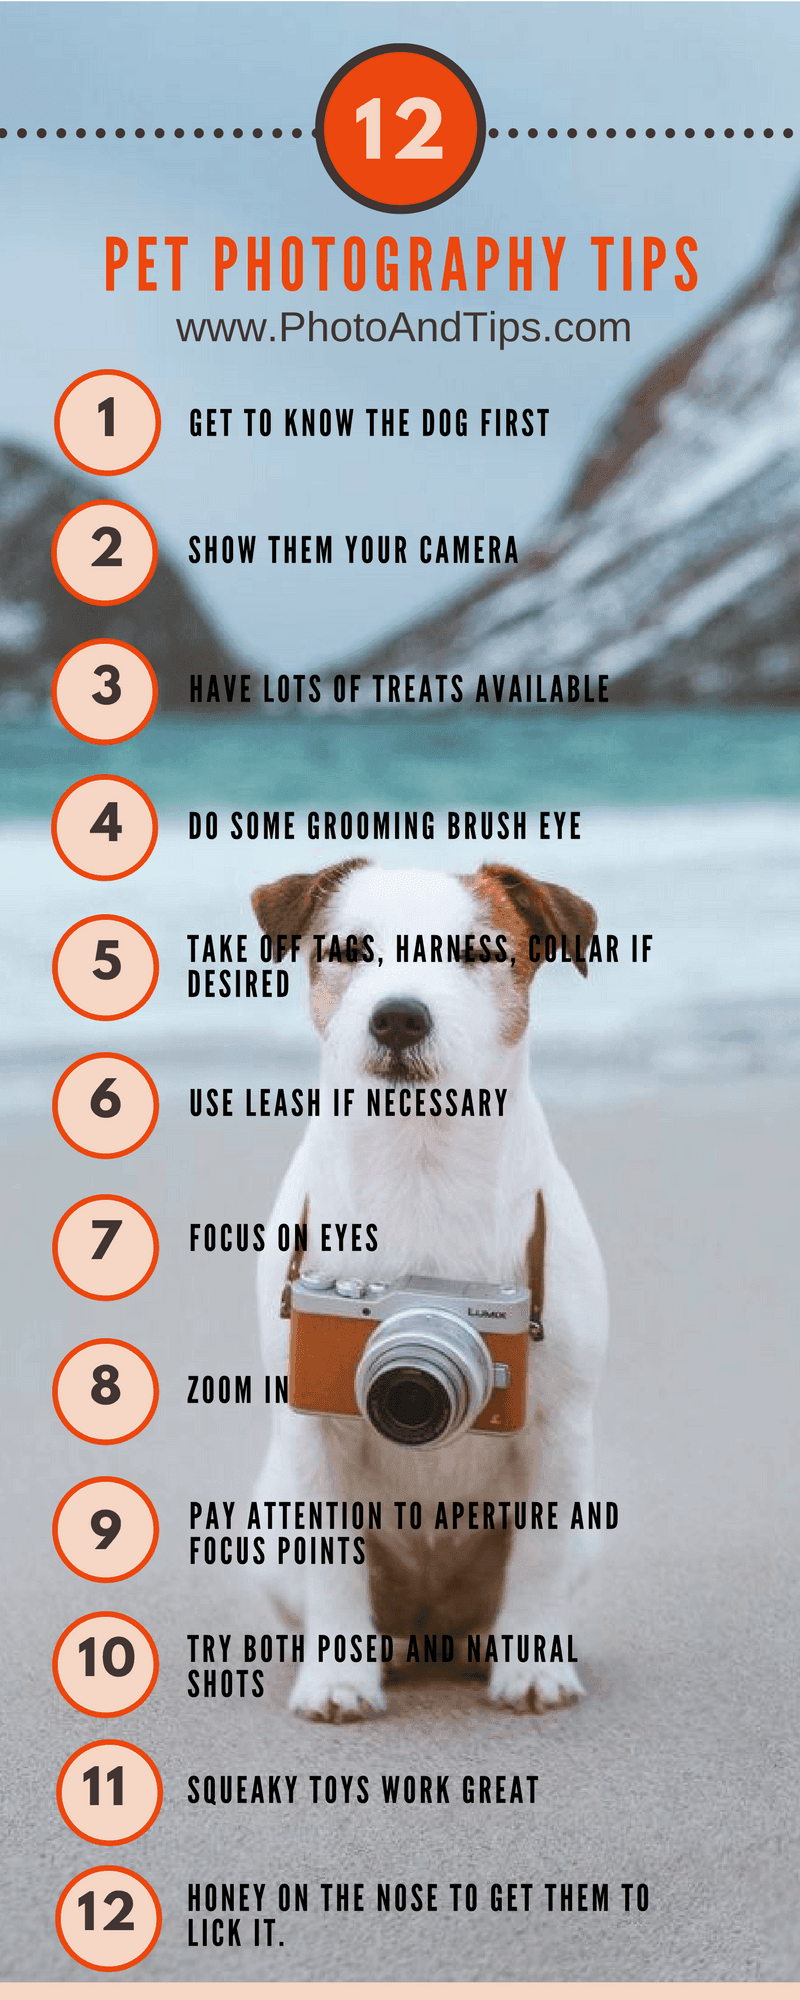 12_Pet_Photography_Tips